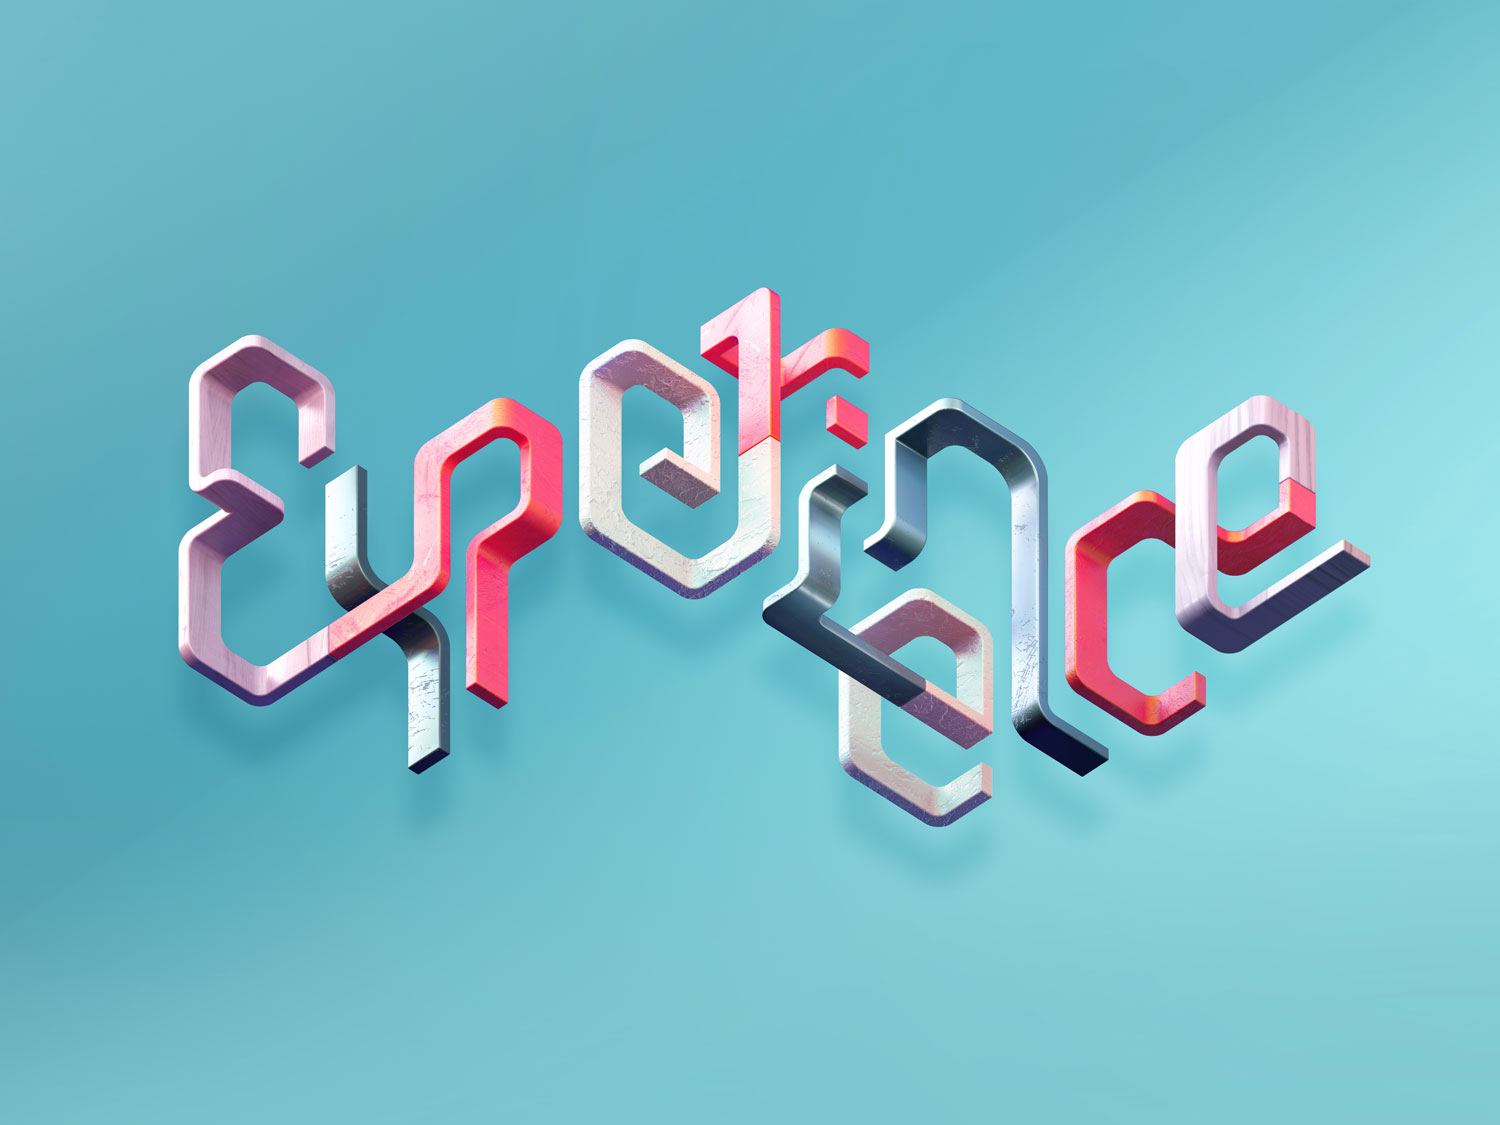 3D typographic key visual for Adobe Document Cloud: Experience Business Campaign by Singapore based brand strategy and creative design consultancy, BÜRO UFHO.